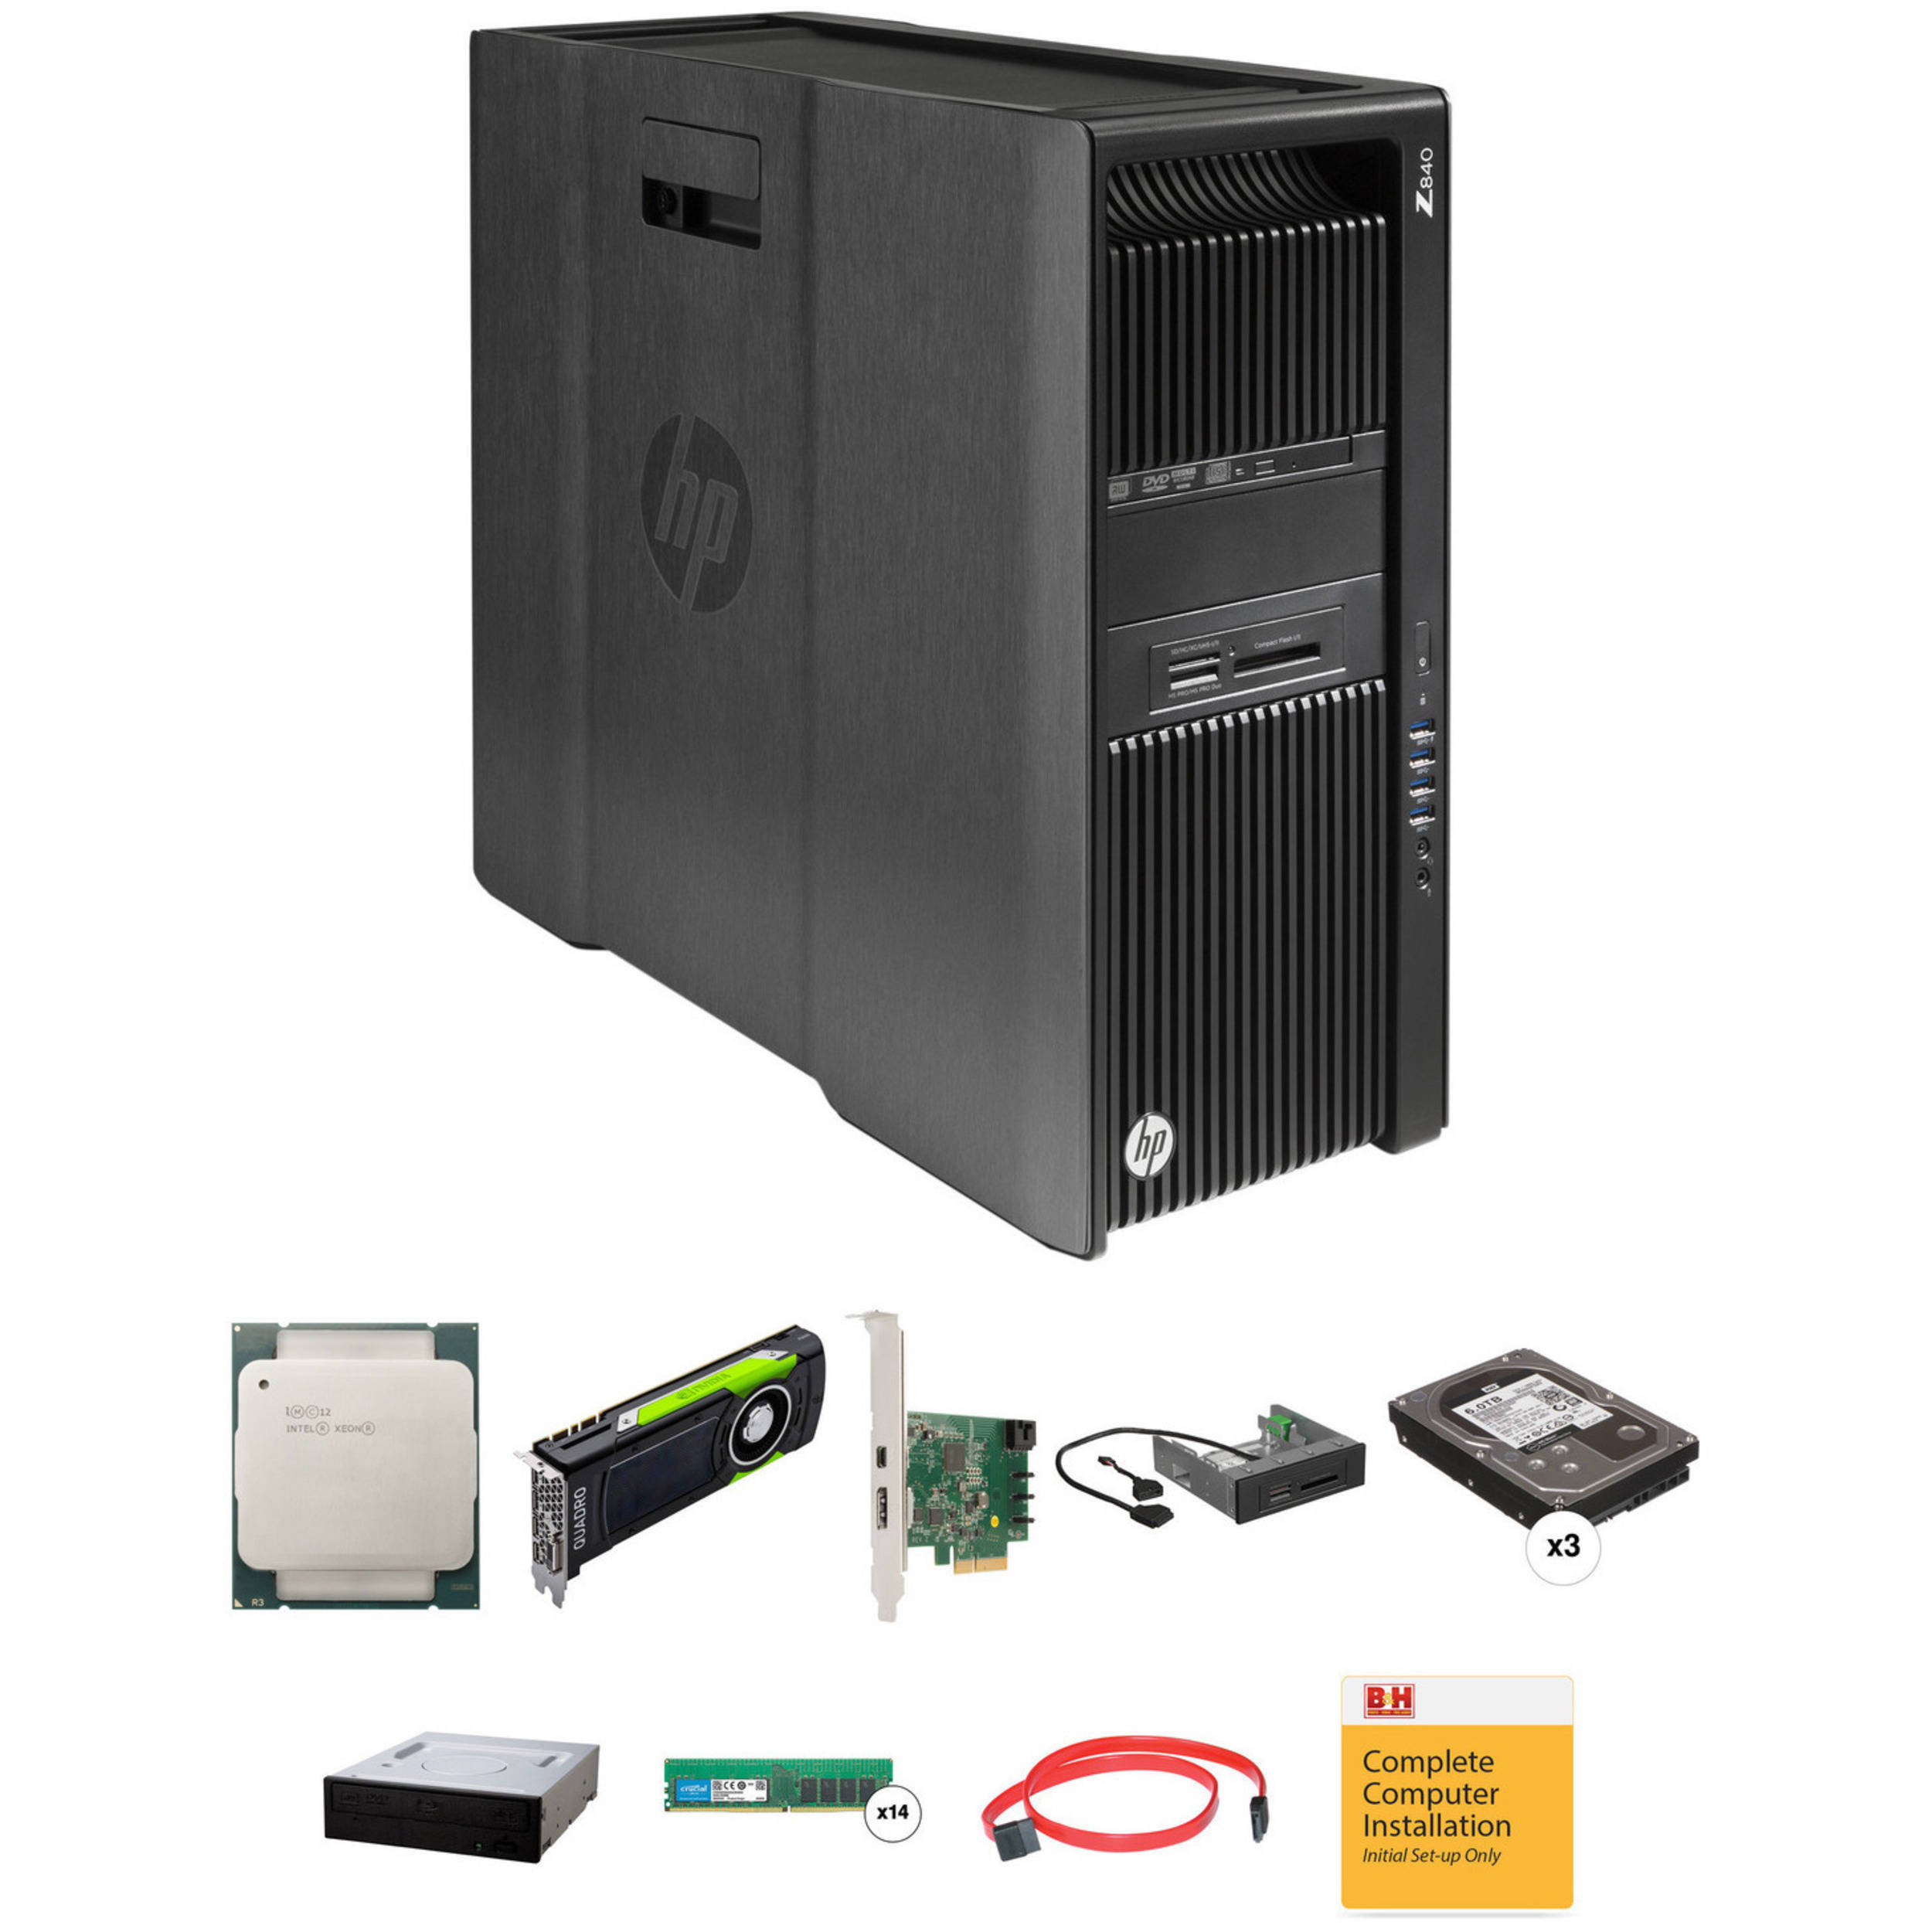 HP Z840 Series Turnkey Workstation with 2x Xeon E5-2650 v4, 128GB RAM, 3 x  6TB HDDs, Quadro M6000, Blu-ray Drive, Thunderbolt 2 Card, and 15-in-1